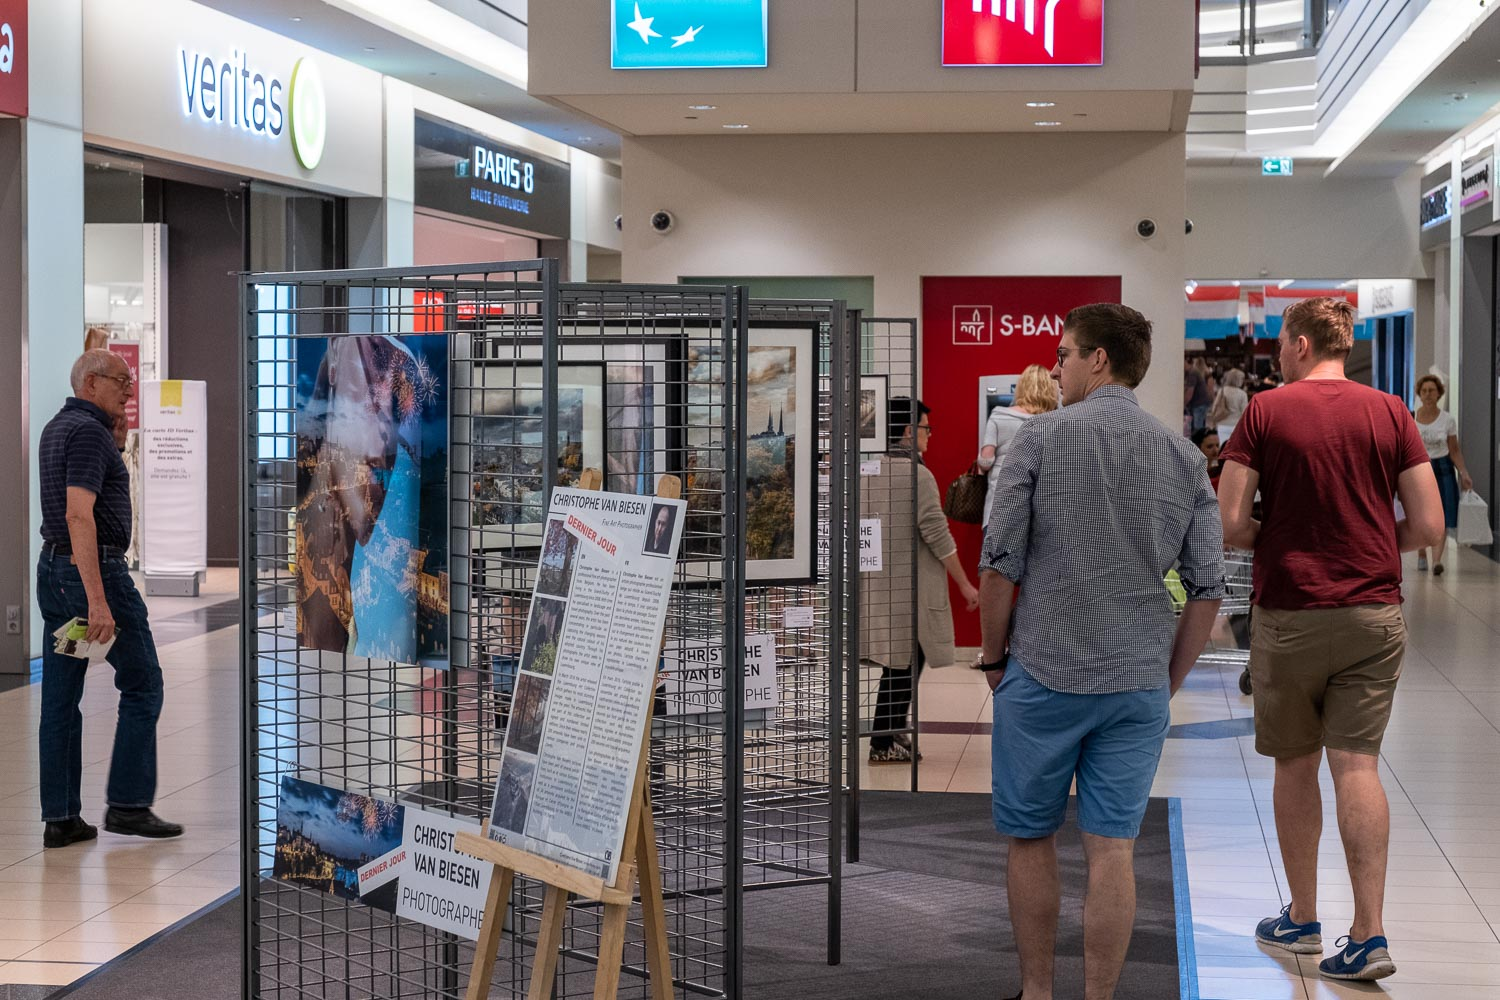 Celebrate Luxembourg - National Day Photography Exhibition - Belle Etoile Shopping Center - Christophe Van Biesen